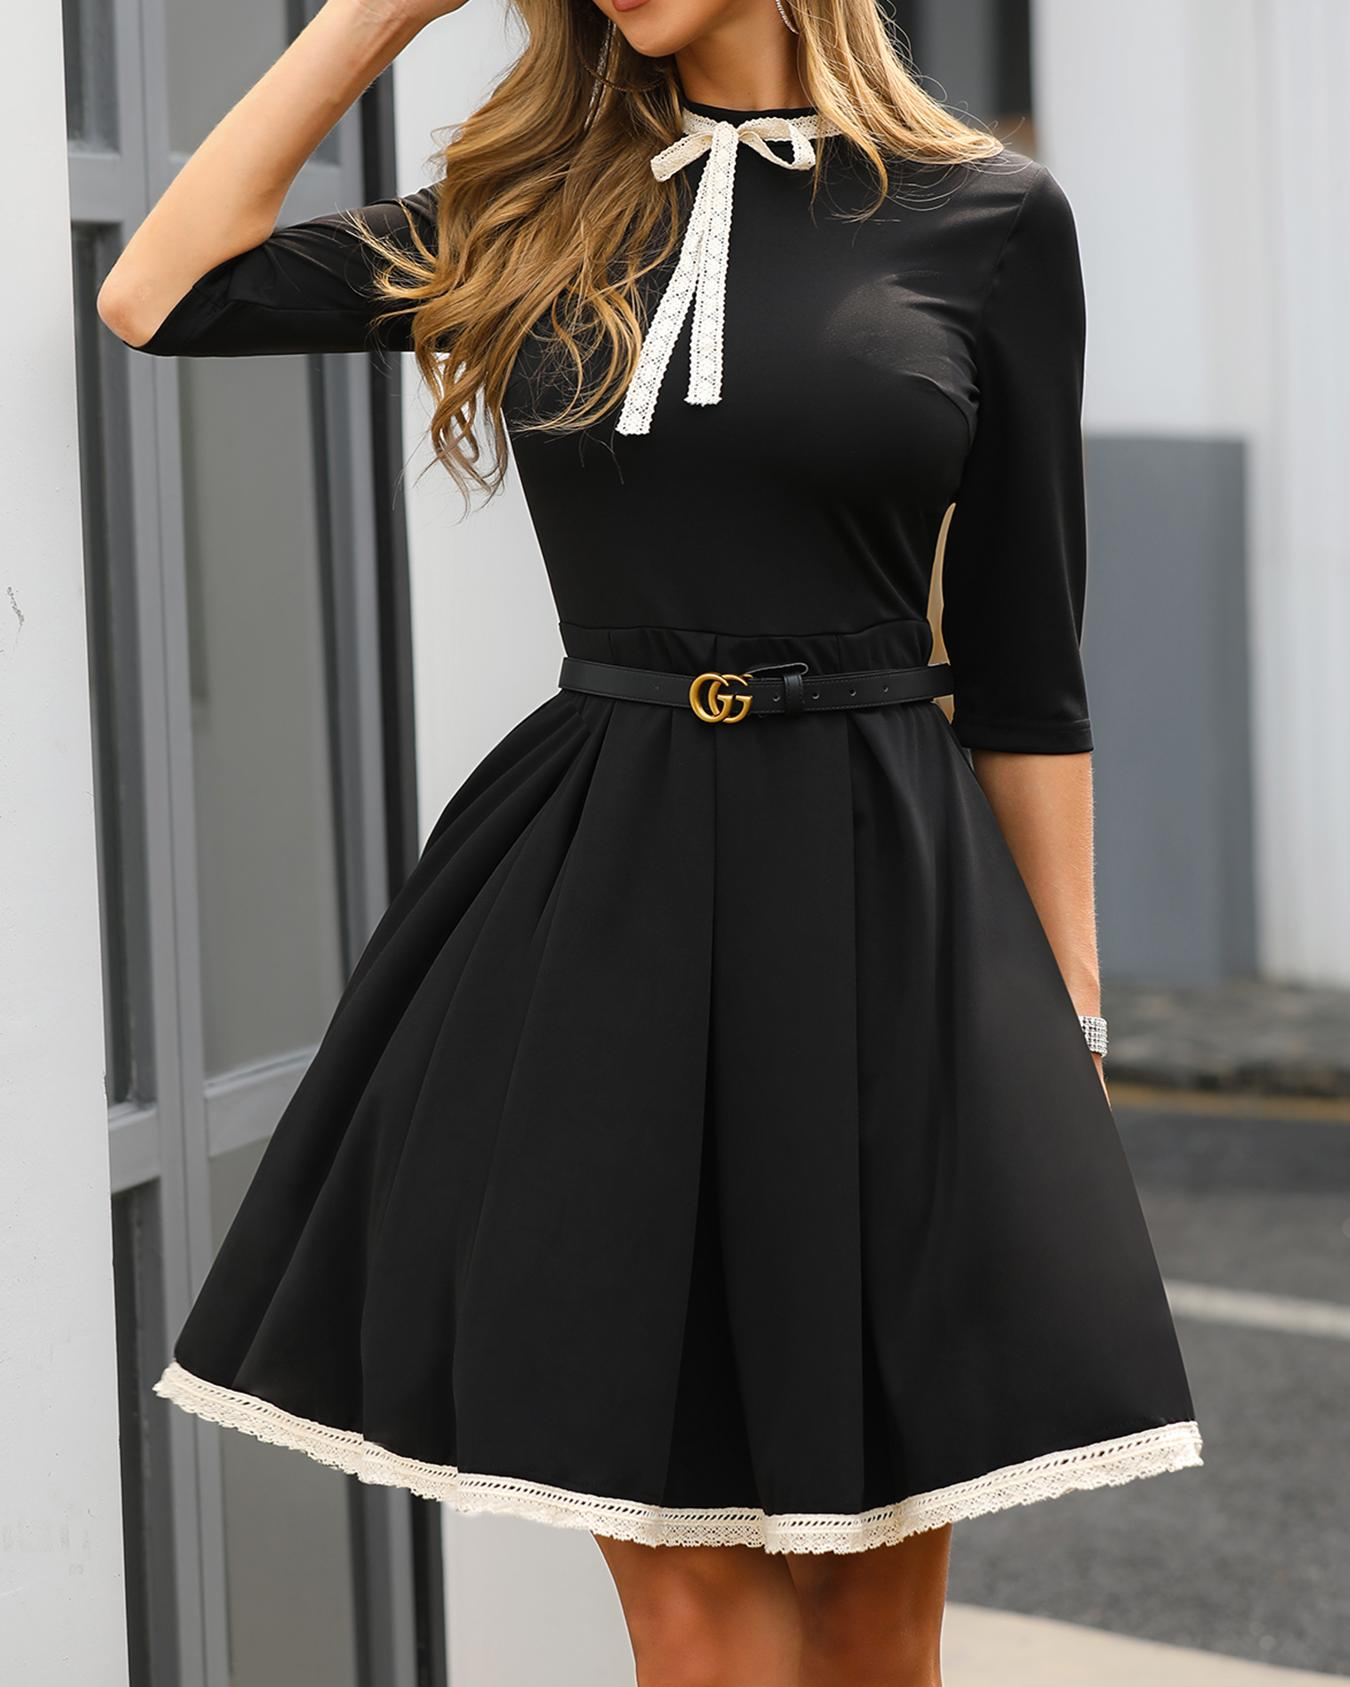 634197f2923 Lace Insert Ruched Bowknot Detail Dress Online. Discover hottest trend  fashion at chicme.com